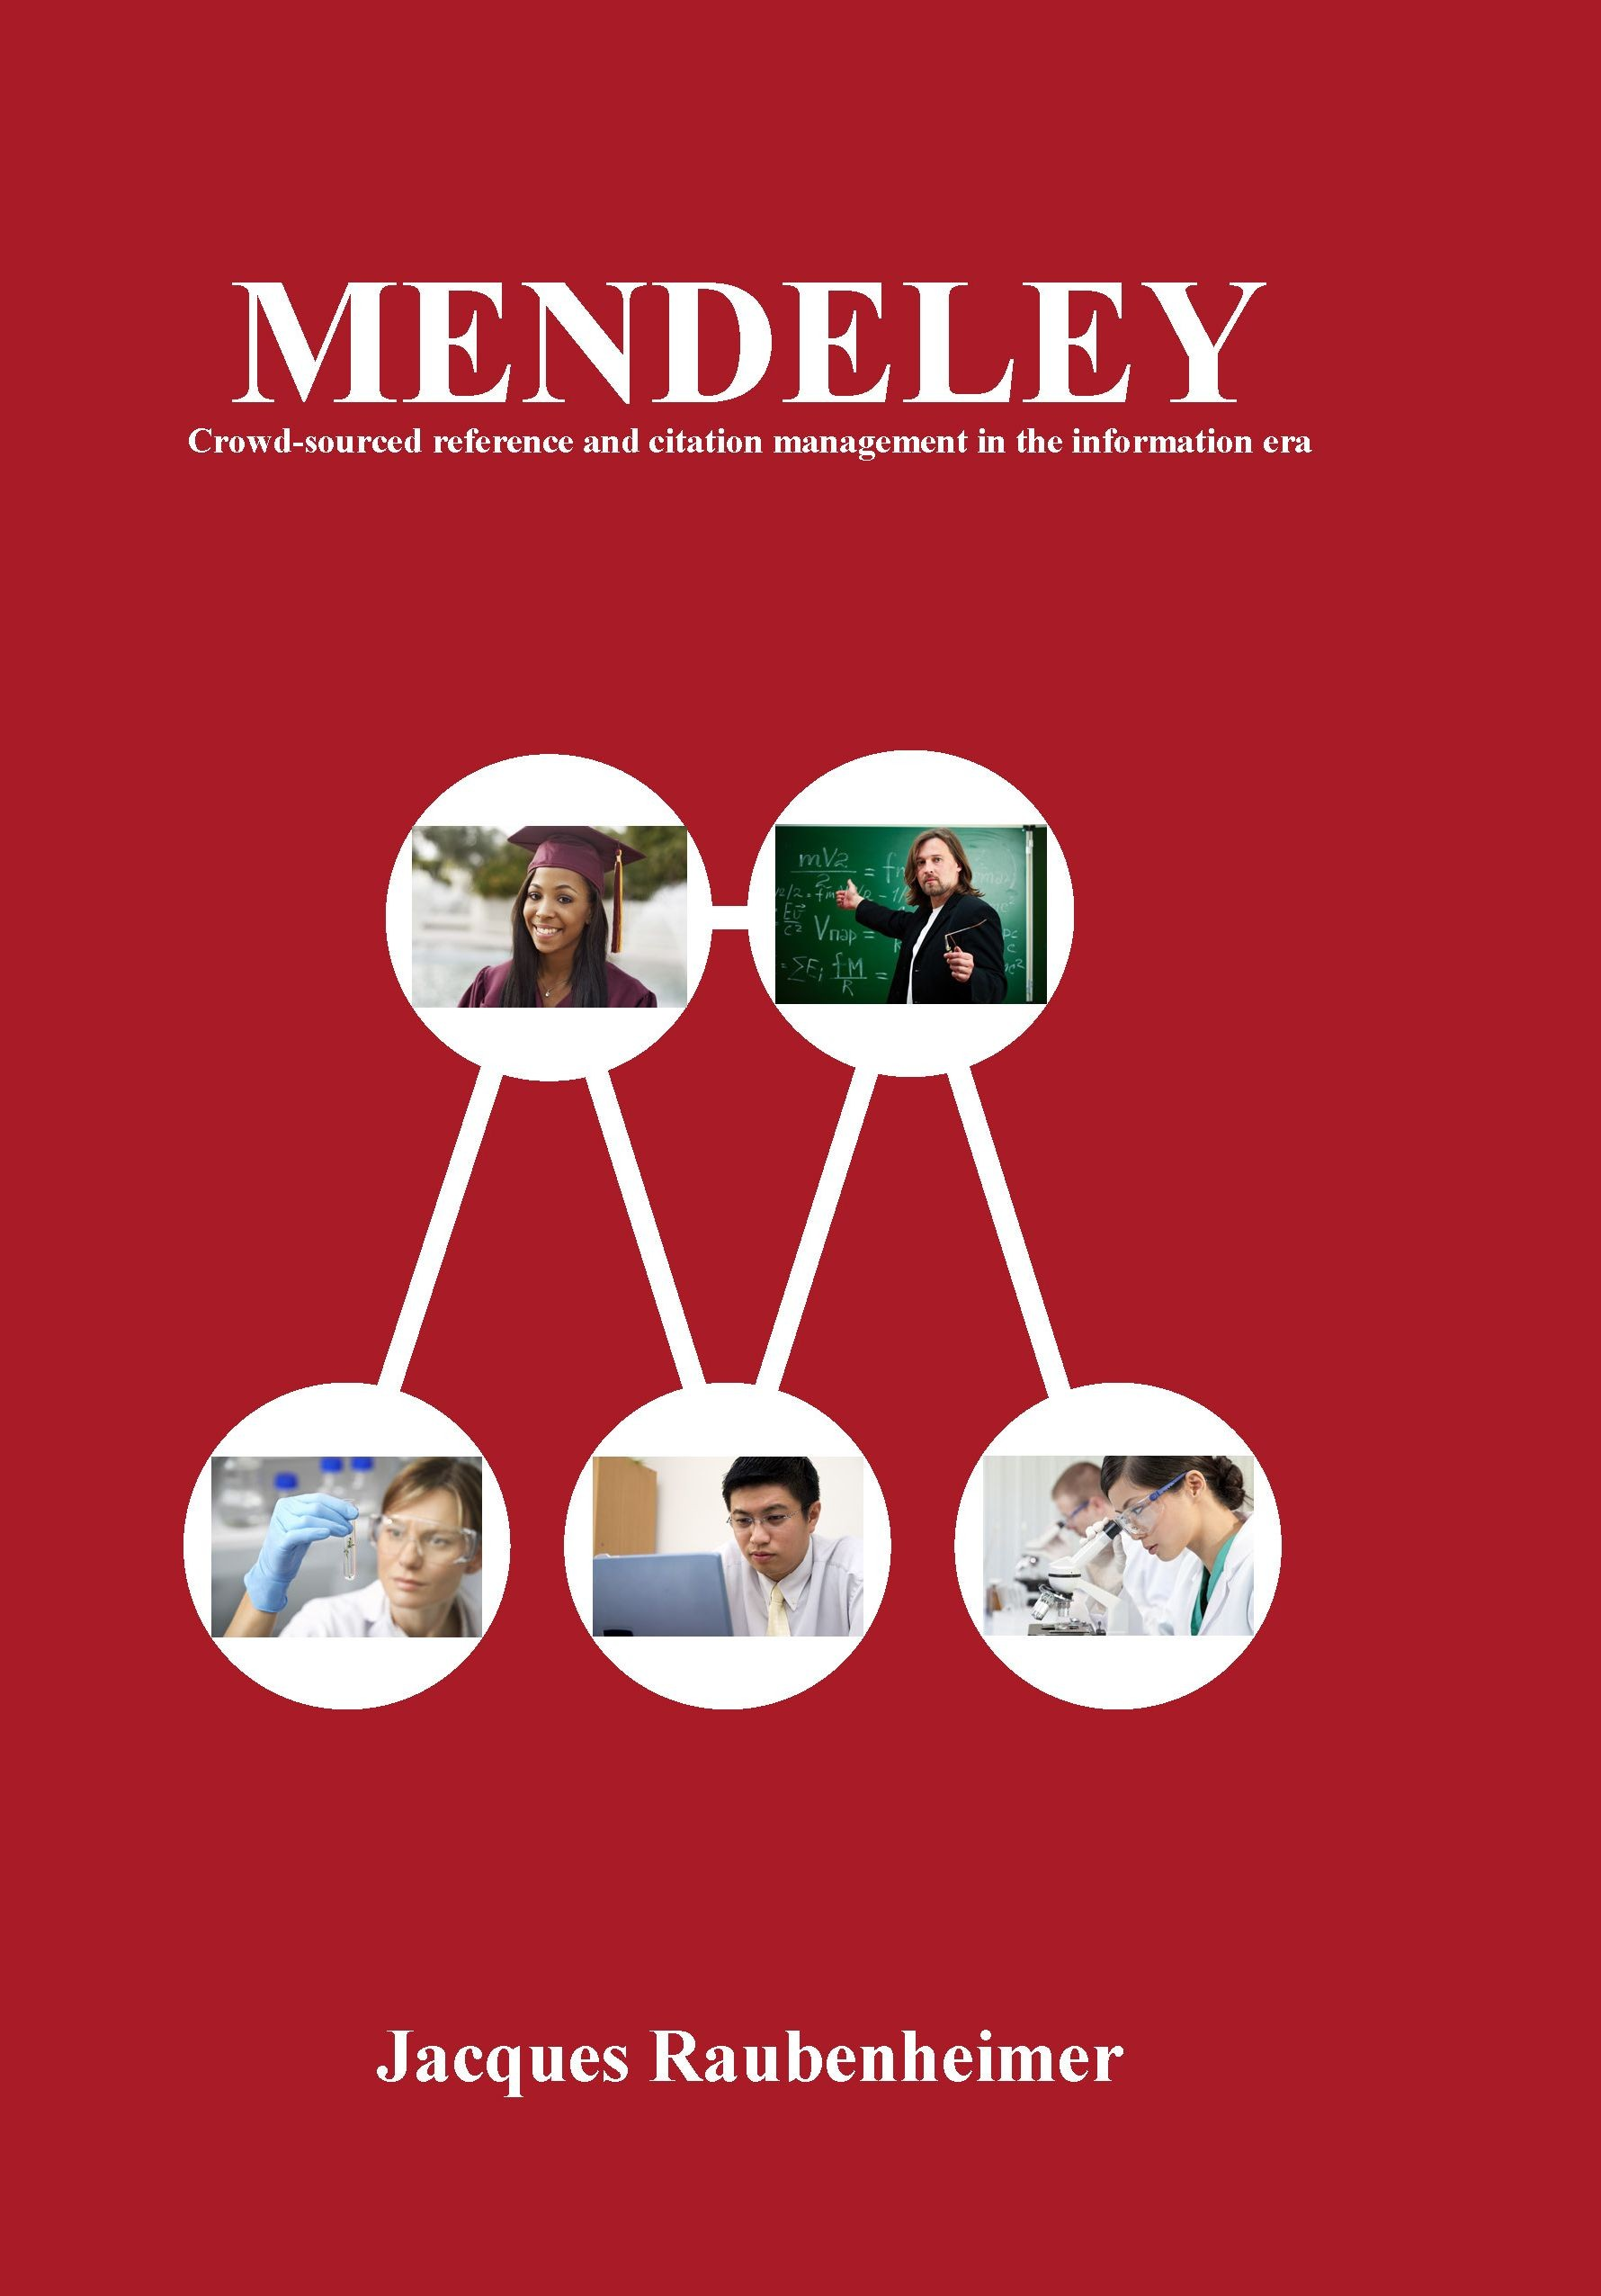 Mendeley book cover front